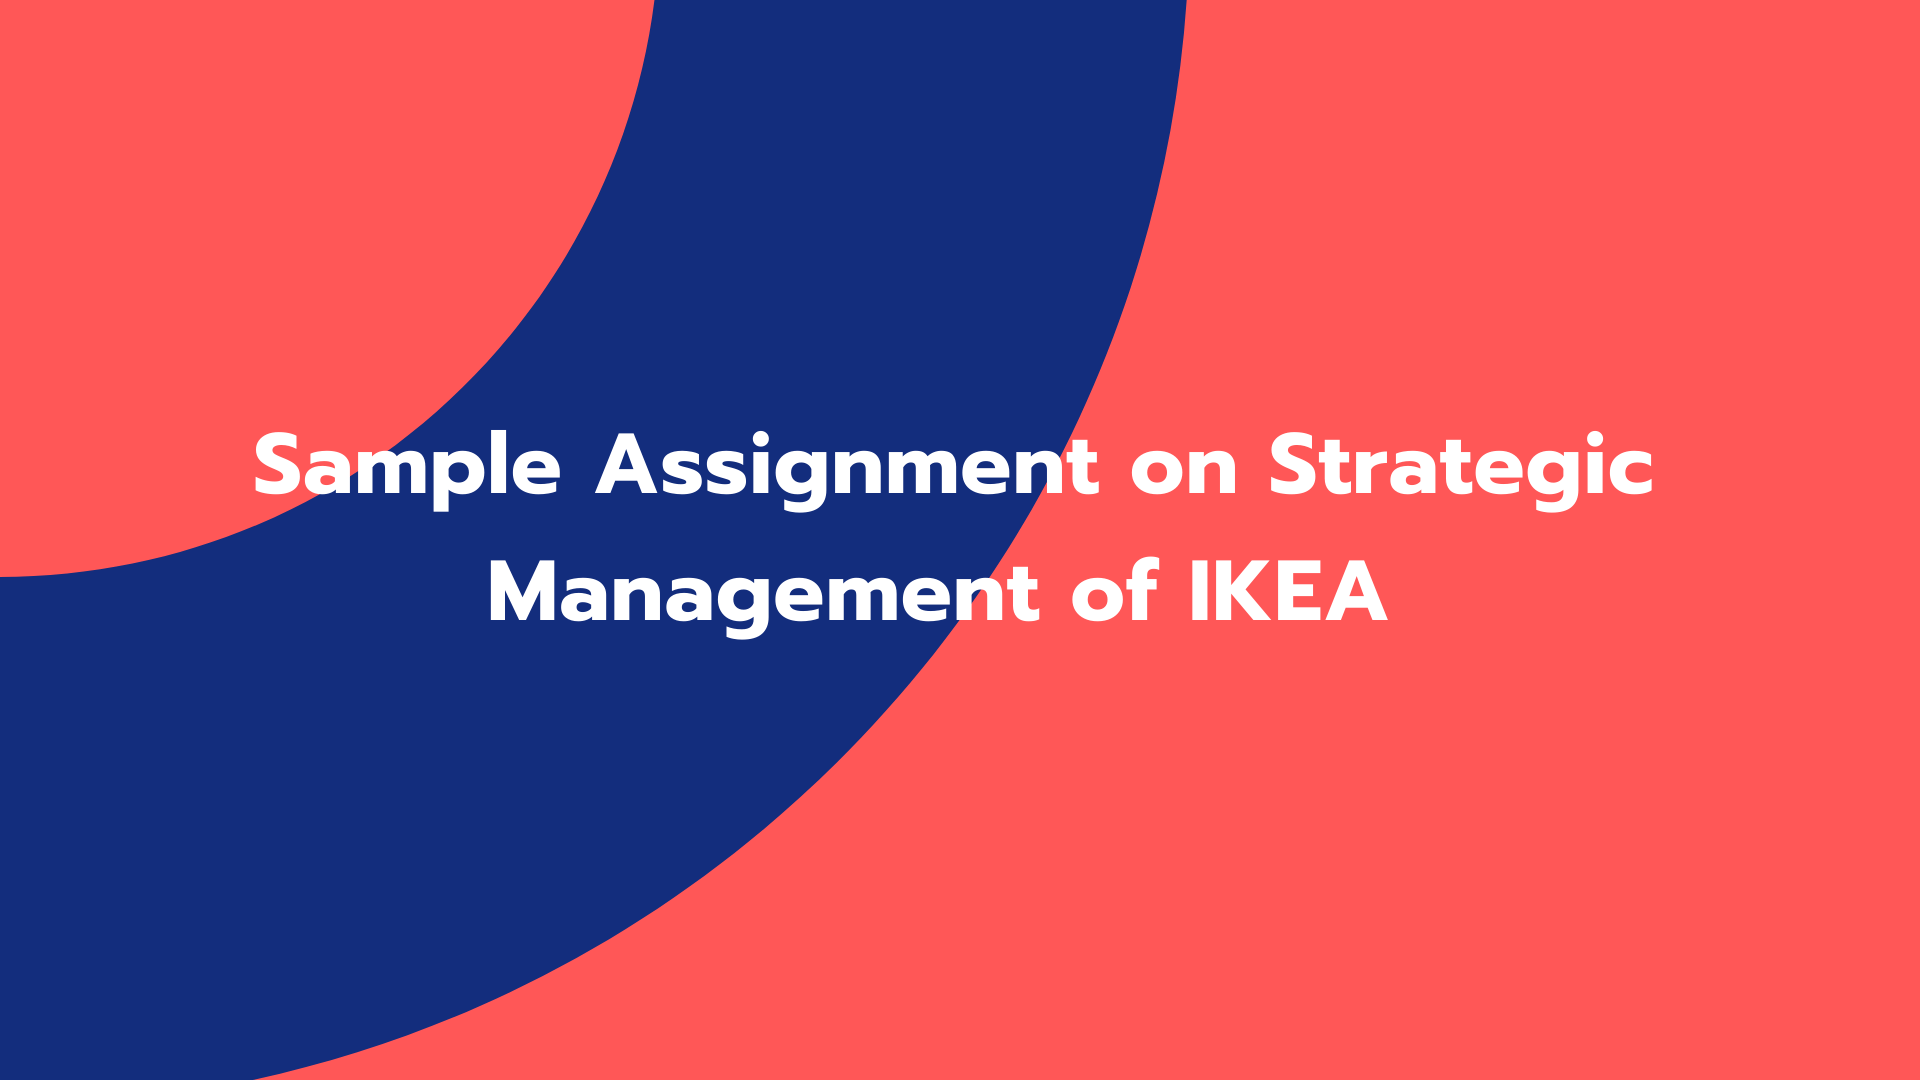 Sample Assignment on Strategic Management of IKEA